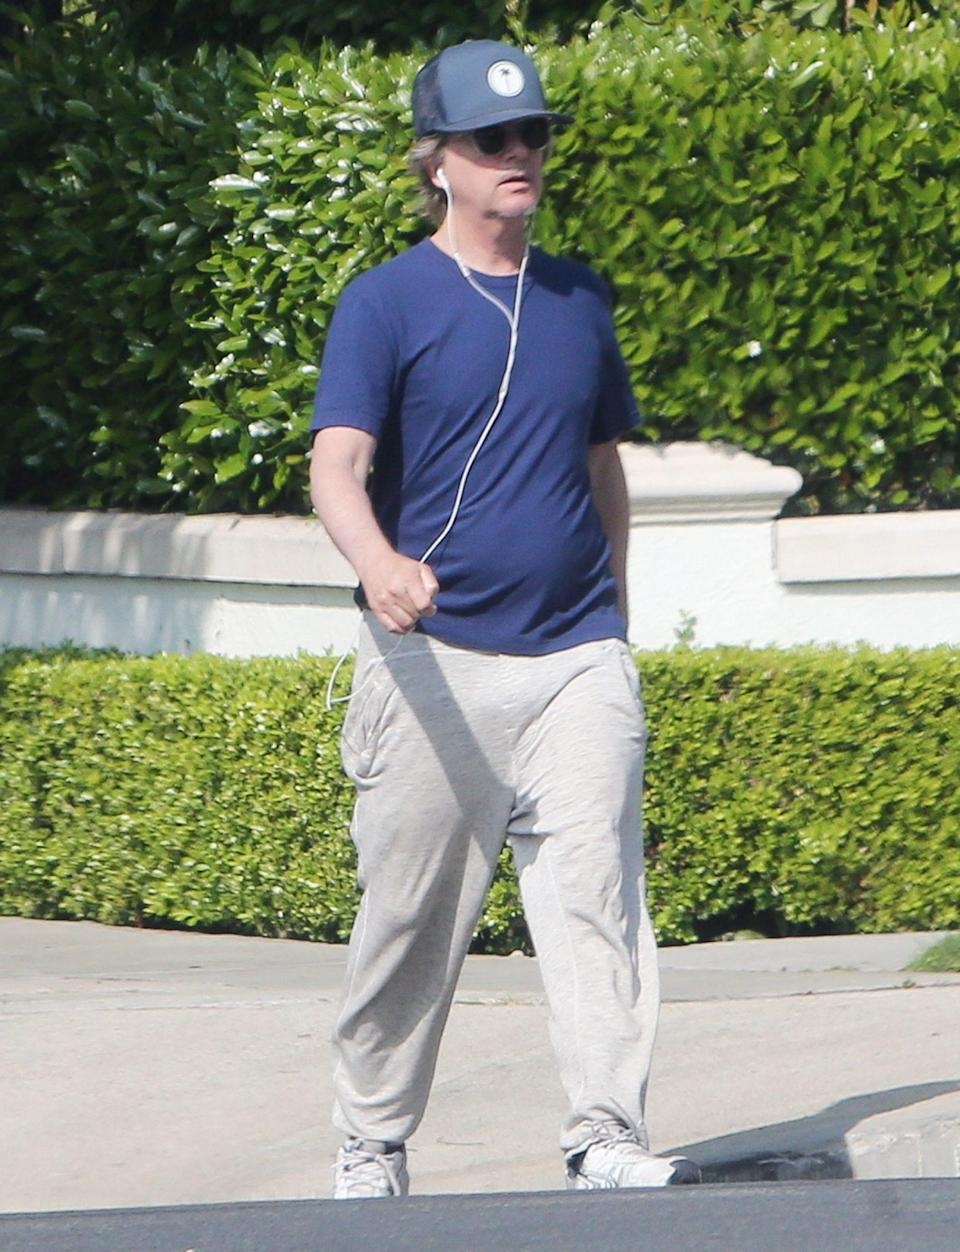 <p>David Spade steps out with his headphones in in Beverly Hills on Thursday, one day after news broke that he'll be hosting the upcoming season of <em>Bachelor in Paradise. </em></p>